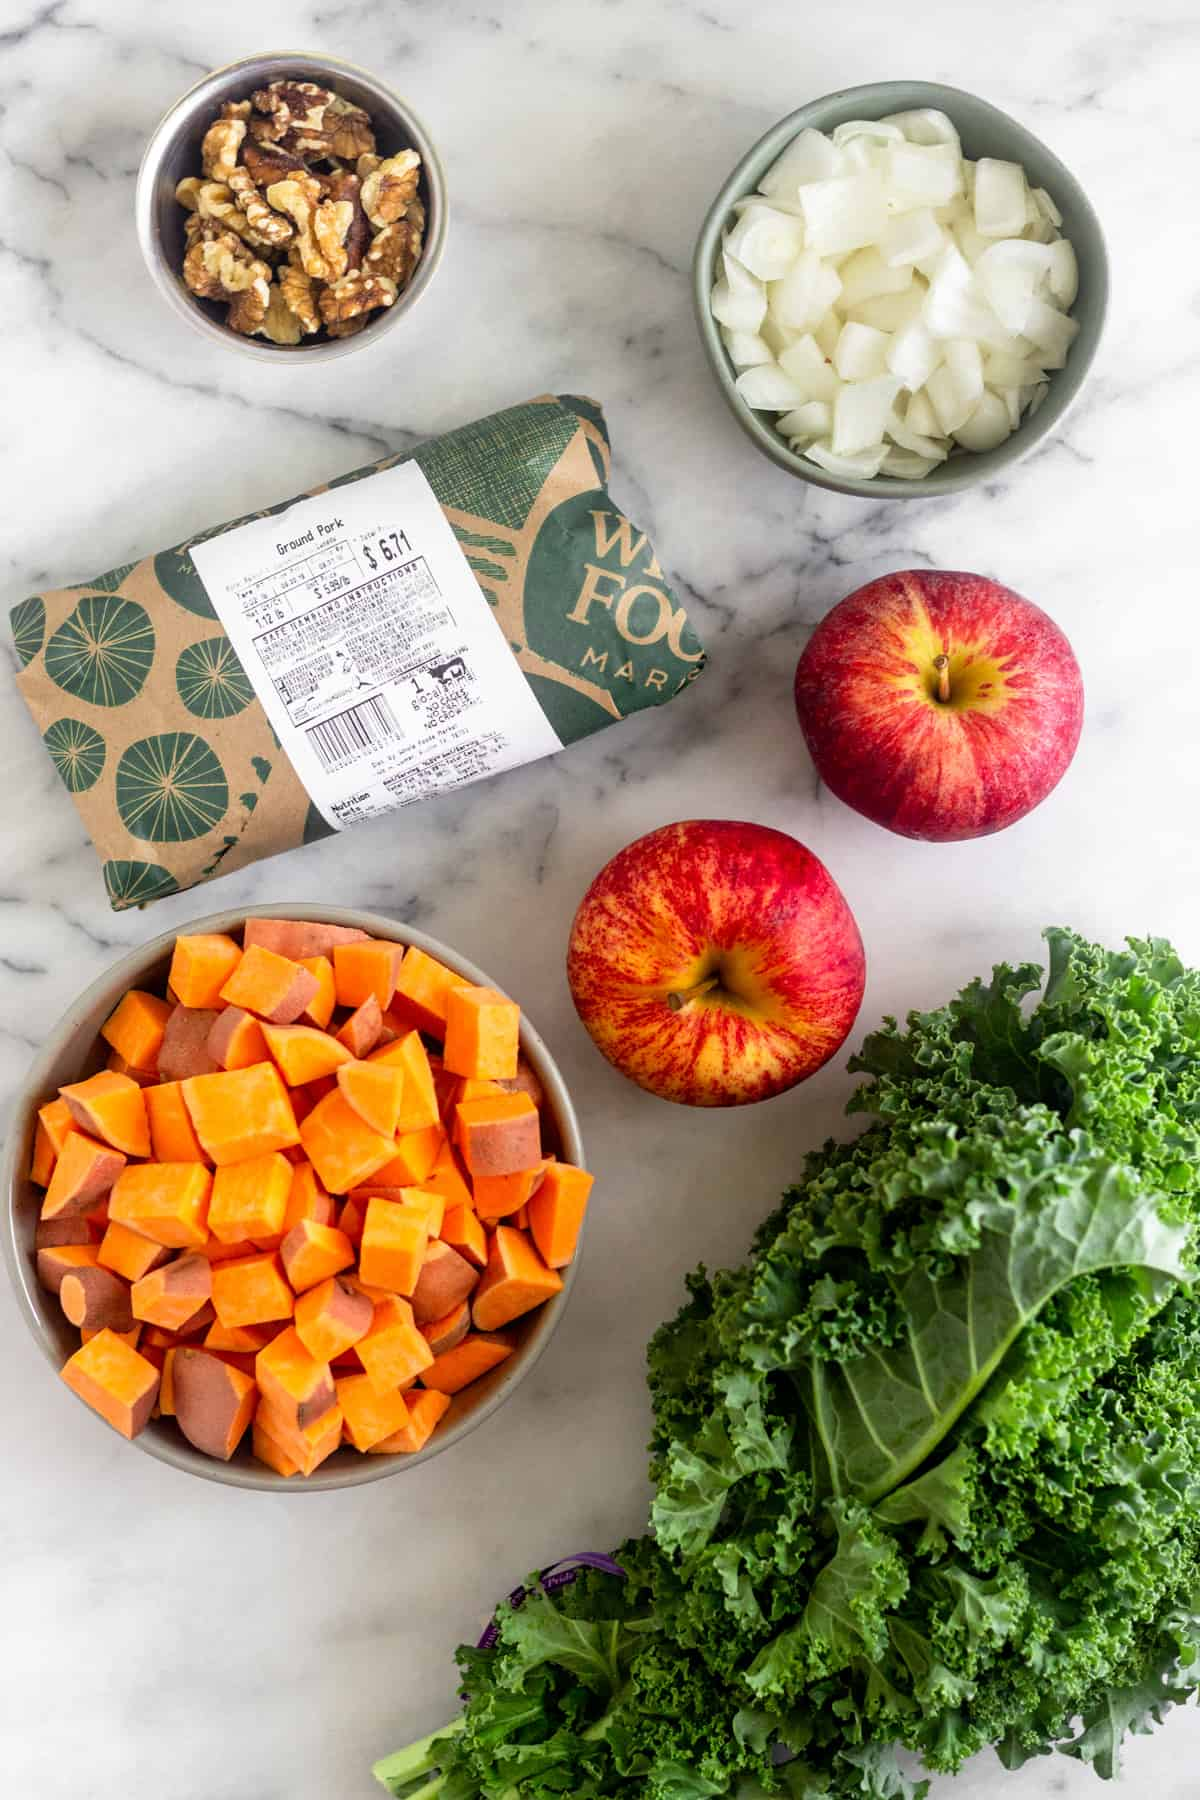 White counter with a small bowl of walnuts, bowl of diced onions, 2 apples, bunch of kale, bowl of diced sweet potatoes, and a package of ground pork.